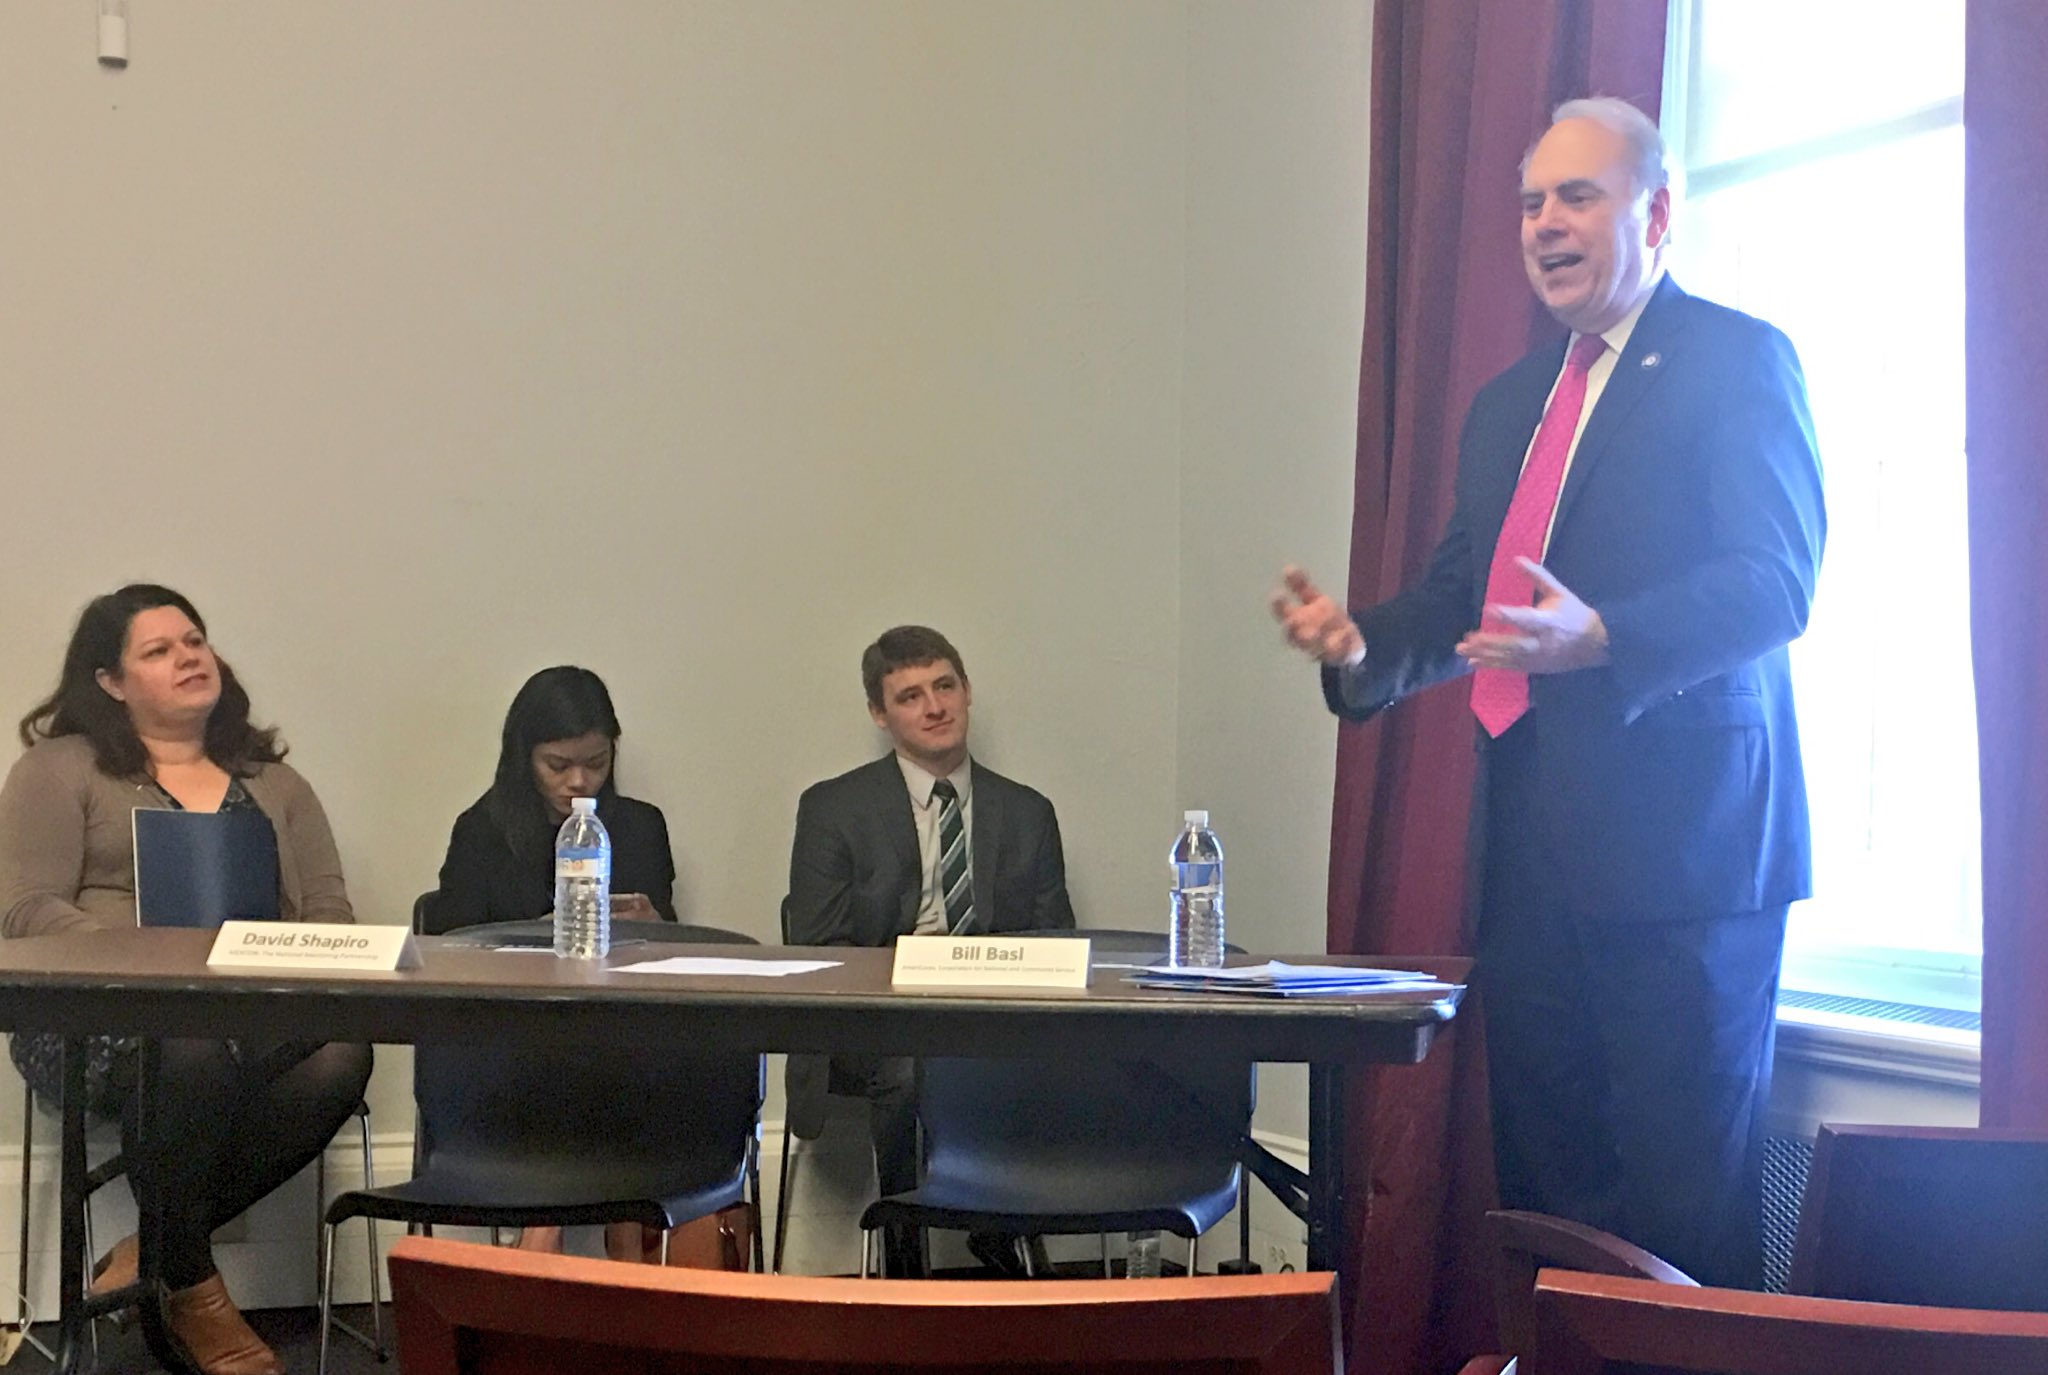 "Bill Basl, @AmeriCorps@Director, speaking at Mentoring Congressional Briefing. ""Volunteering and service can bring us together."" #MentorIRL https://t.co/SUdN7nWTSE"